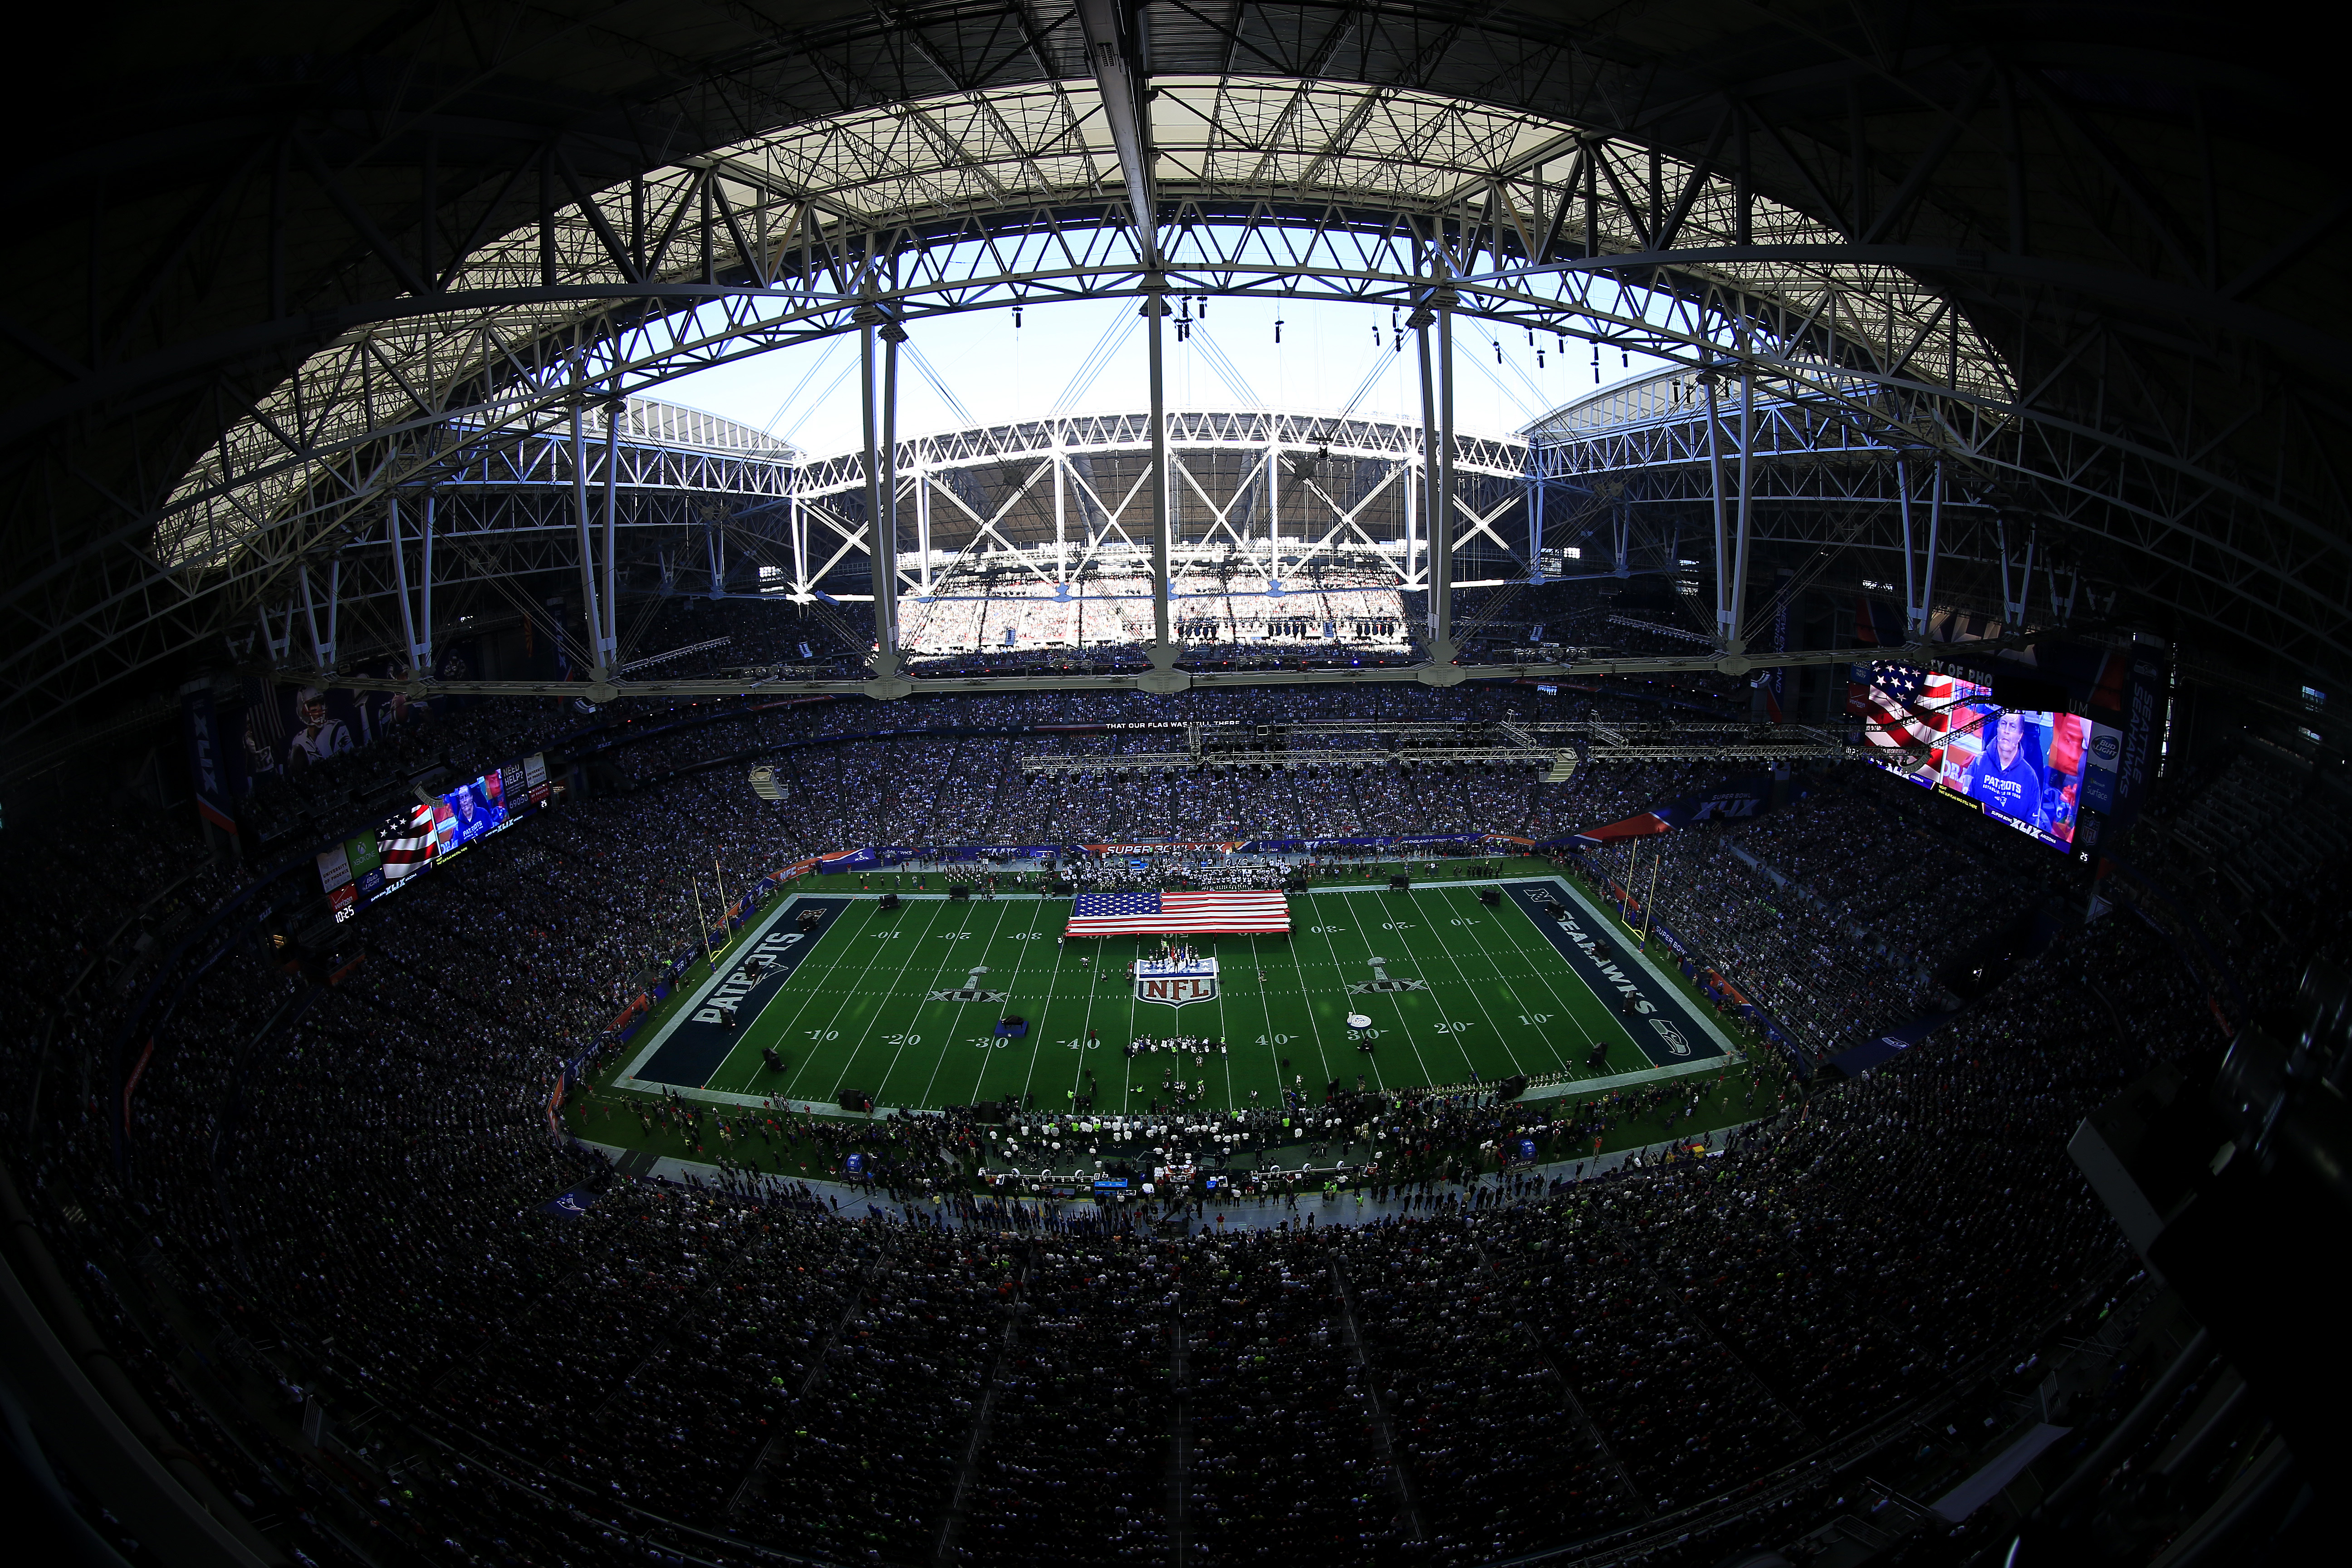 The 2015 Super Bowl in Glendale, Arizona, was a possible terror attack target for Abdul Kareem, prosecutors say. Getty